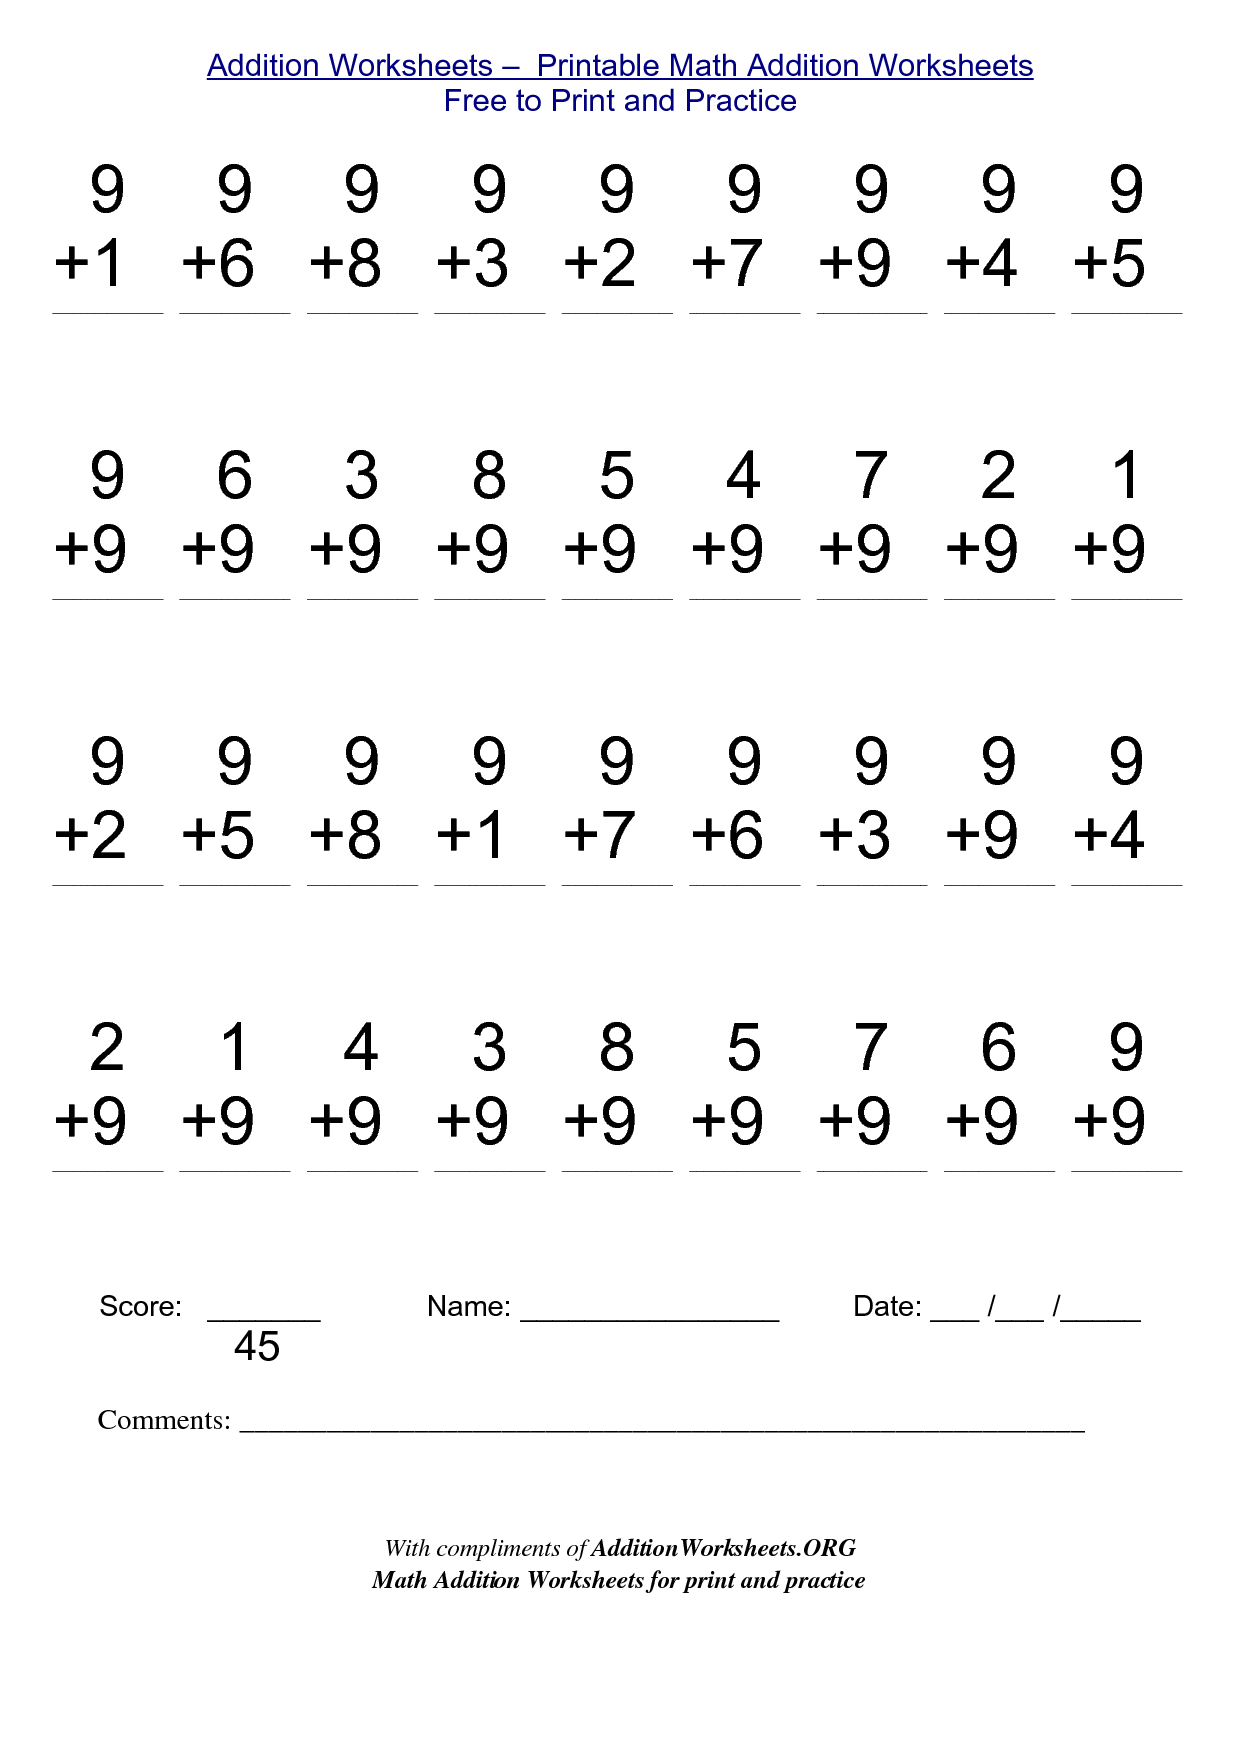 Worksheets Printable Math Worksheets For 1st Grade singapore math kindergarten worksheets first grade addition printable free to print